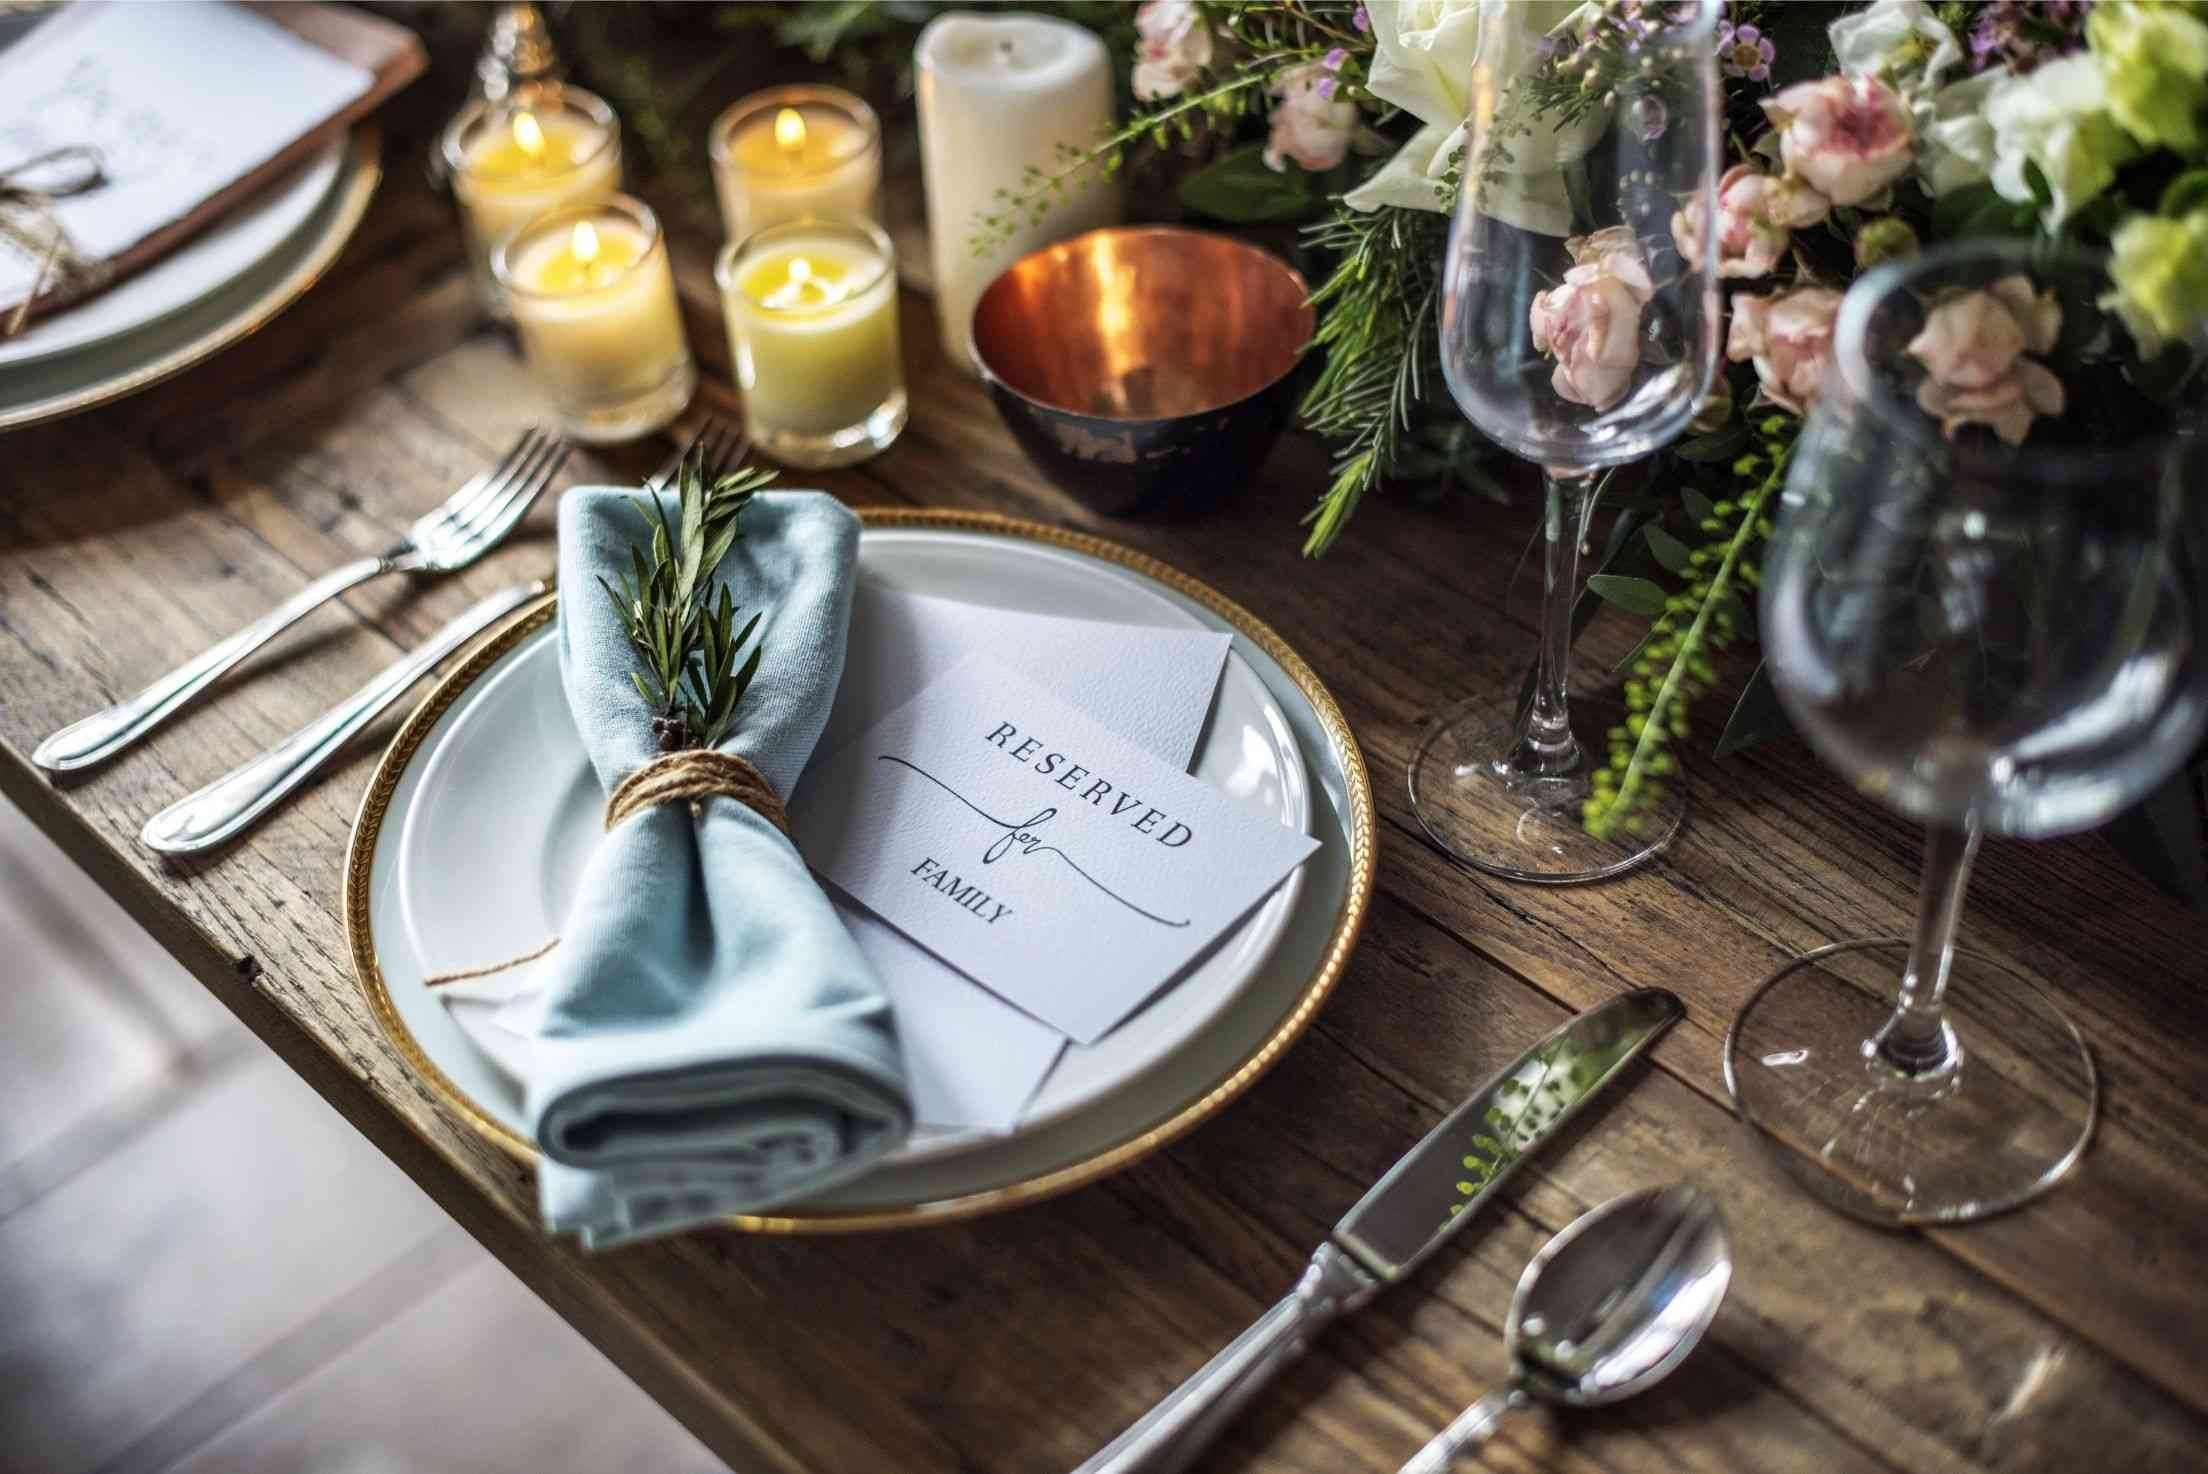 Fine Dining: Why The Home Experience Is Better Than A Restaurant